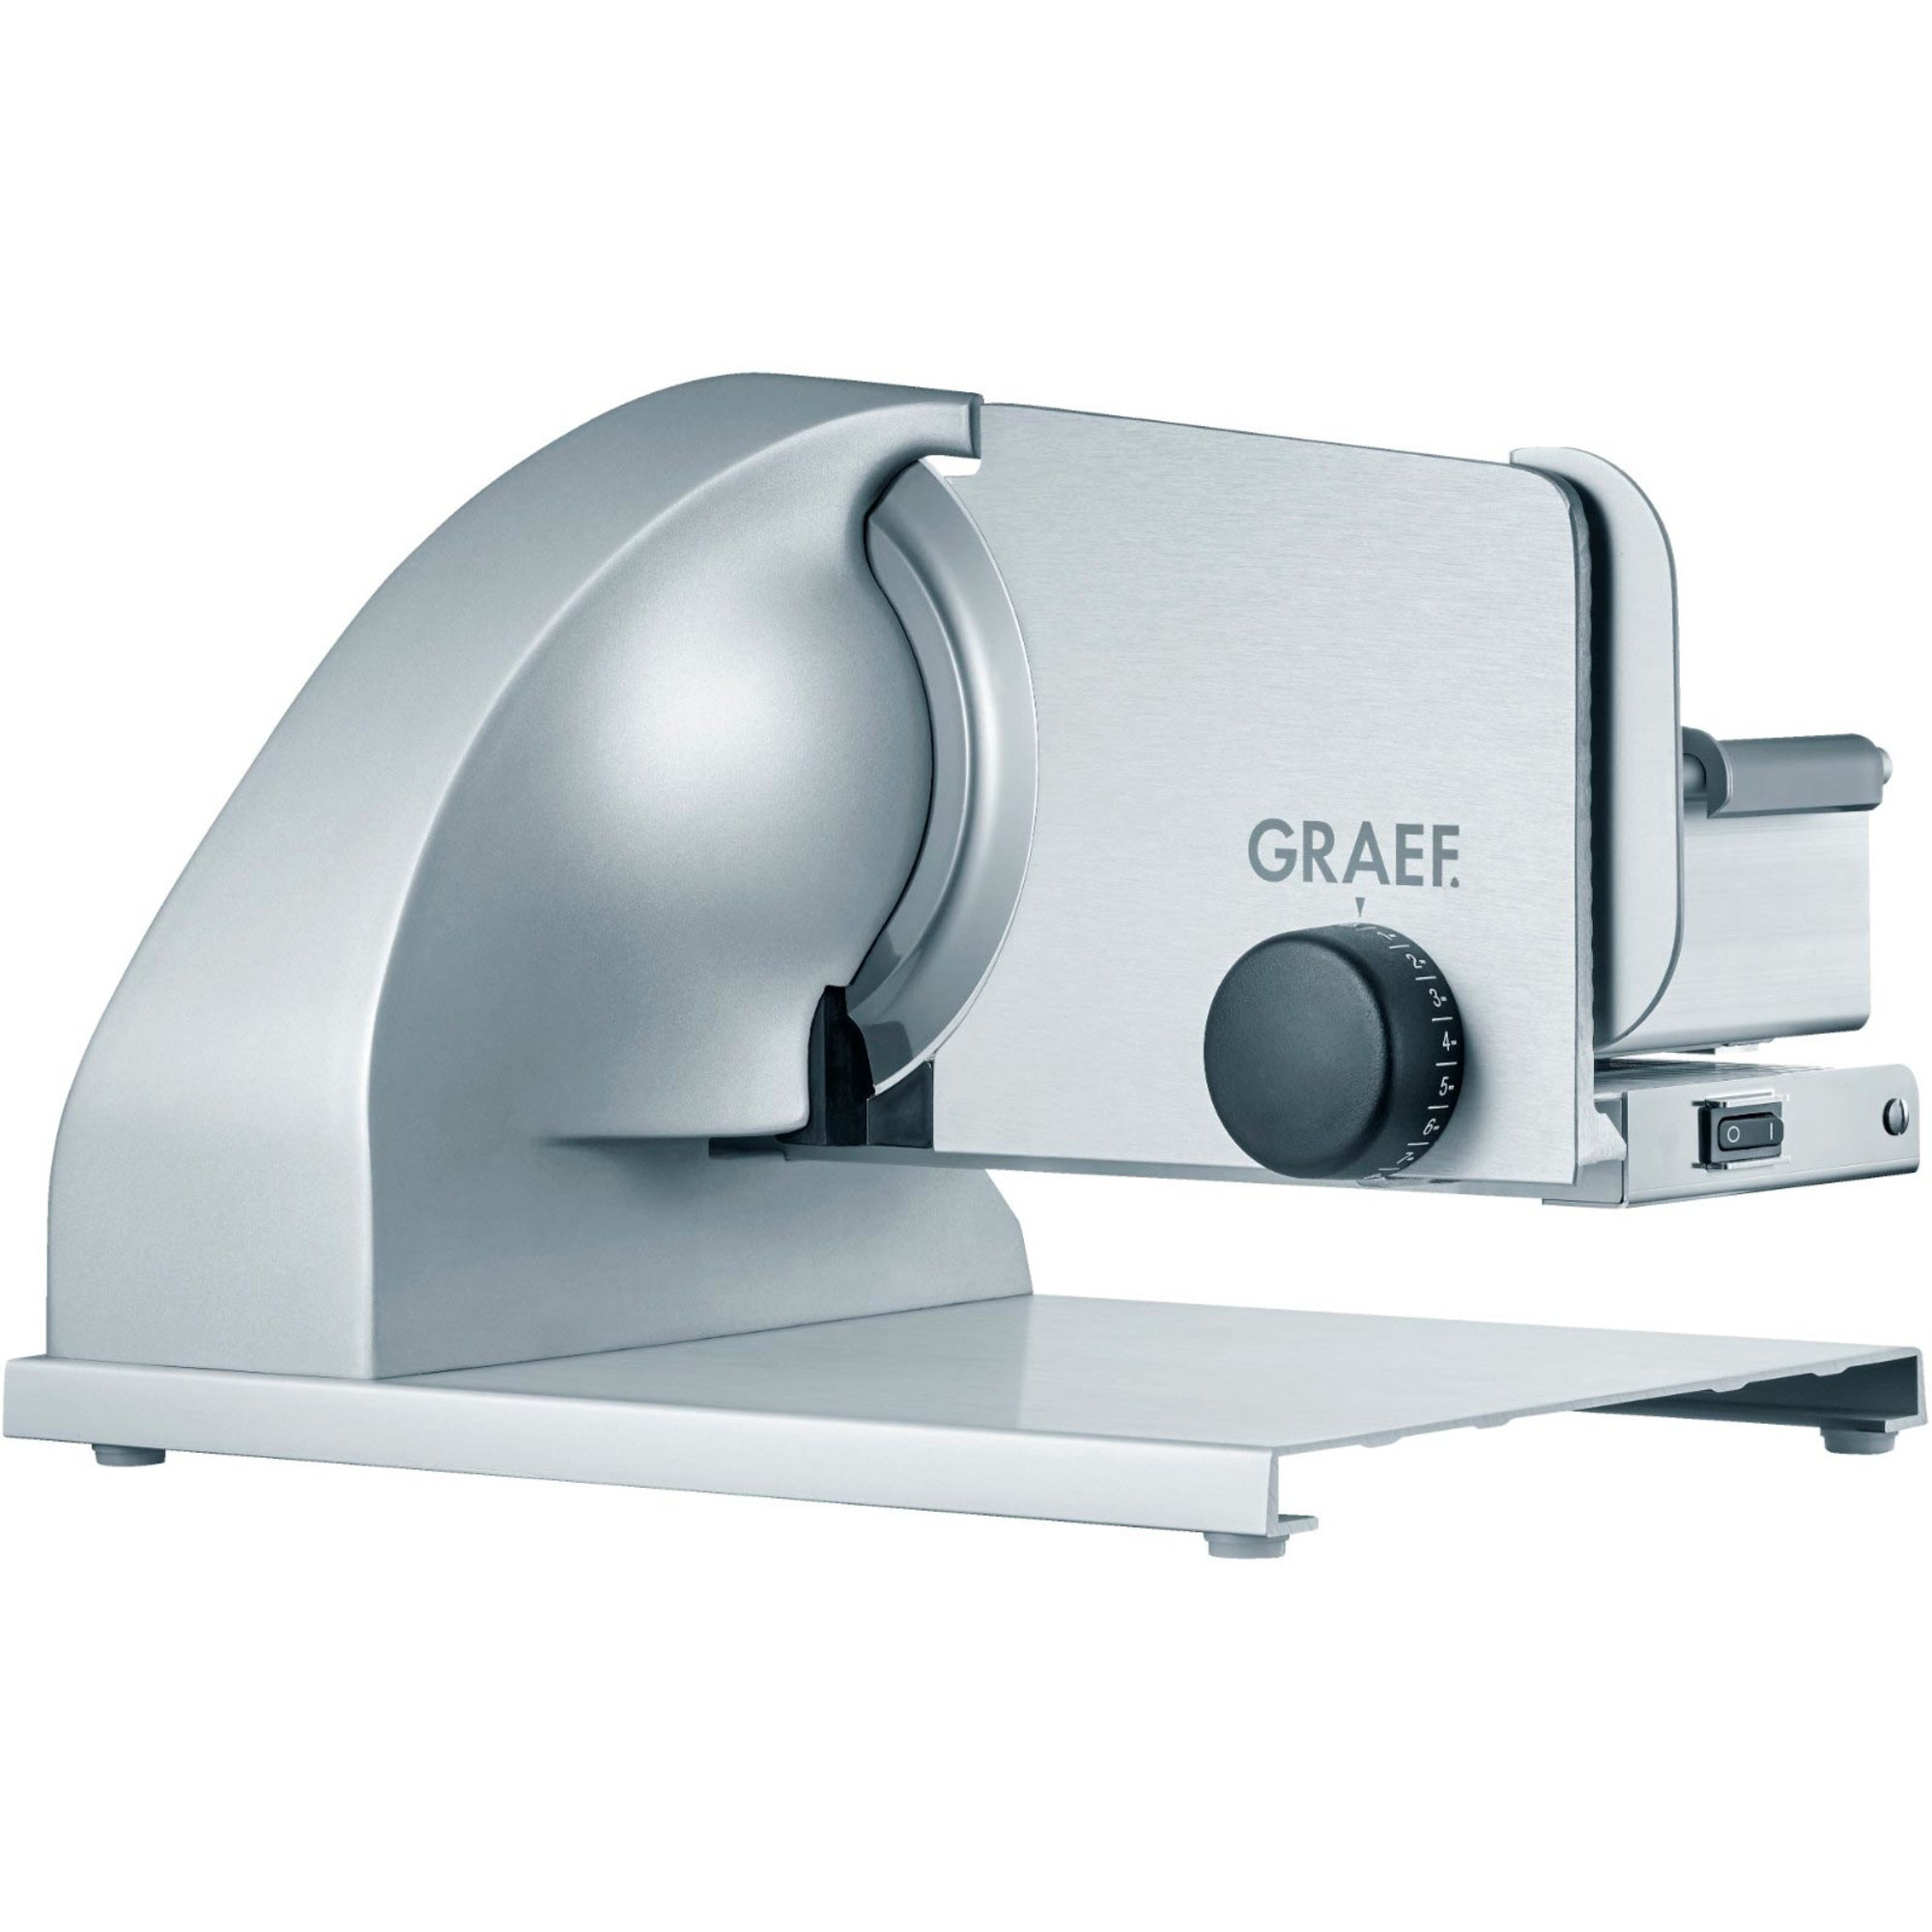 Graef Sliced Kitchen Slicer